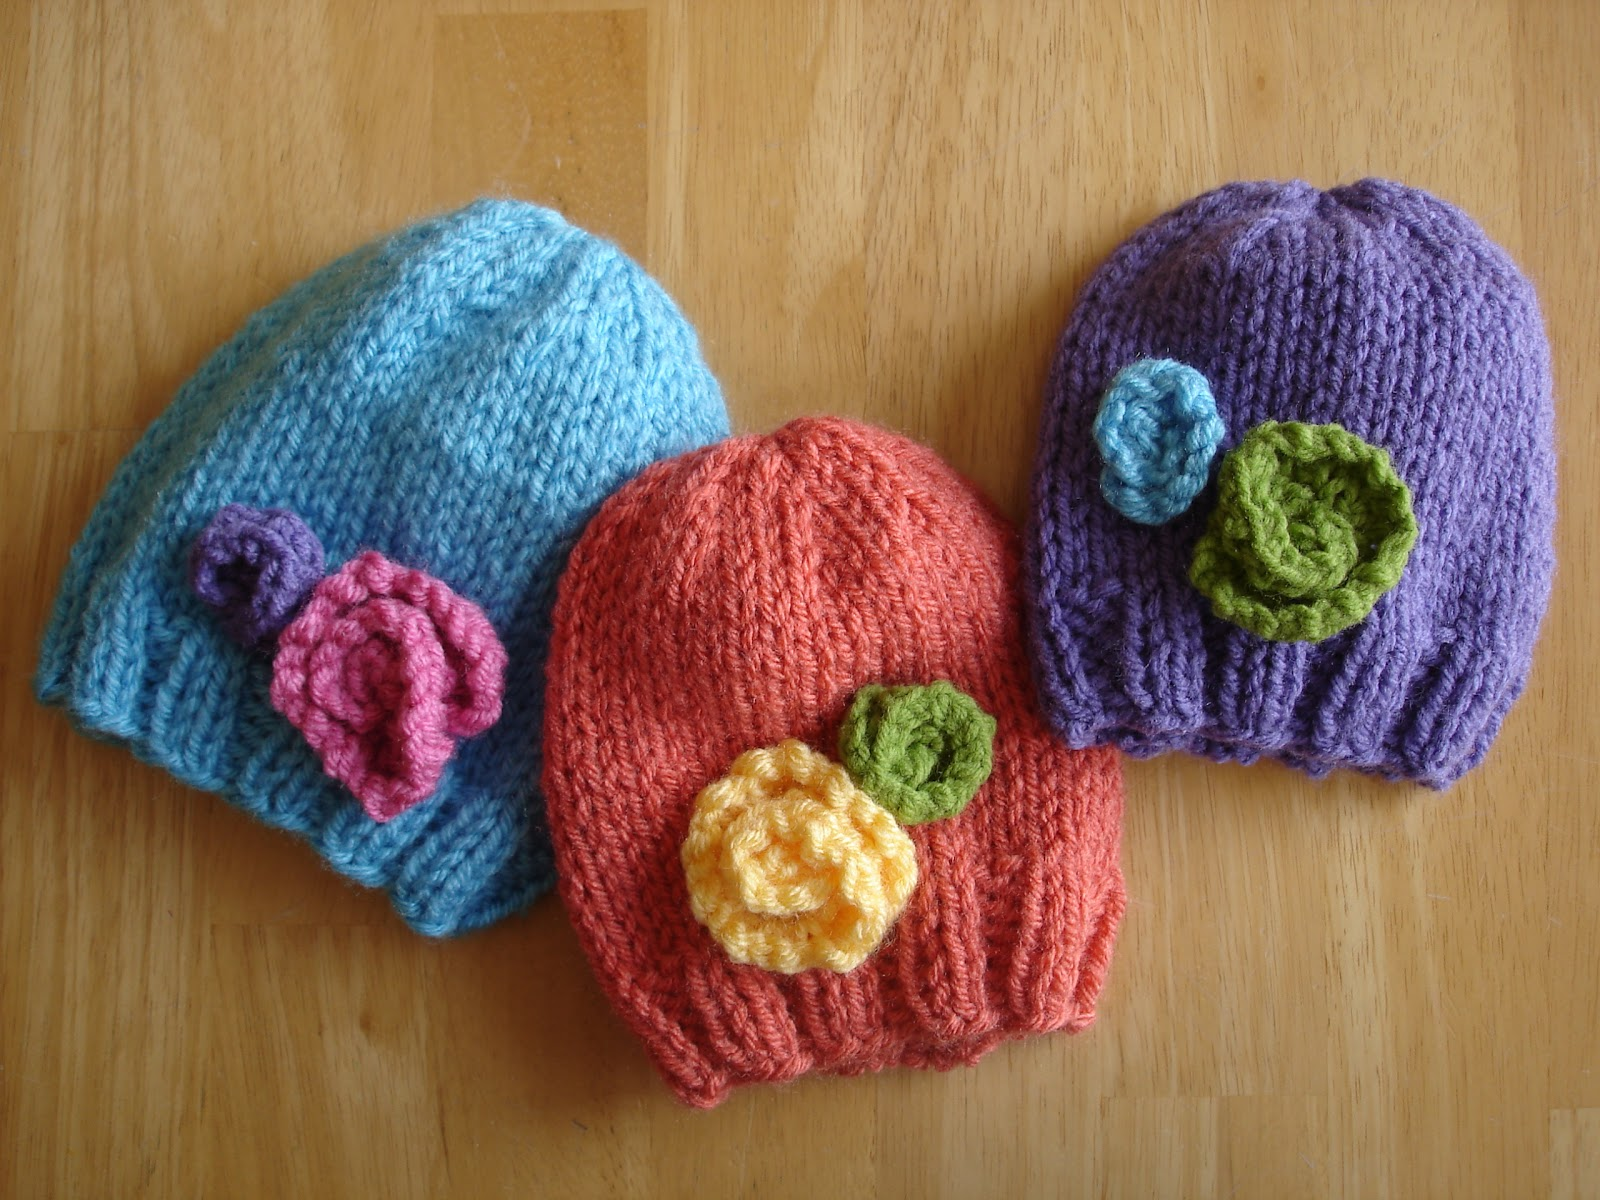 Knit Baby Hats Patterns : Fiber Flux: Free Knitting Pattern! Baby In Bloom Hats